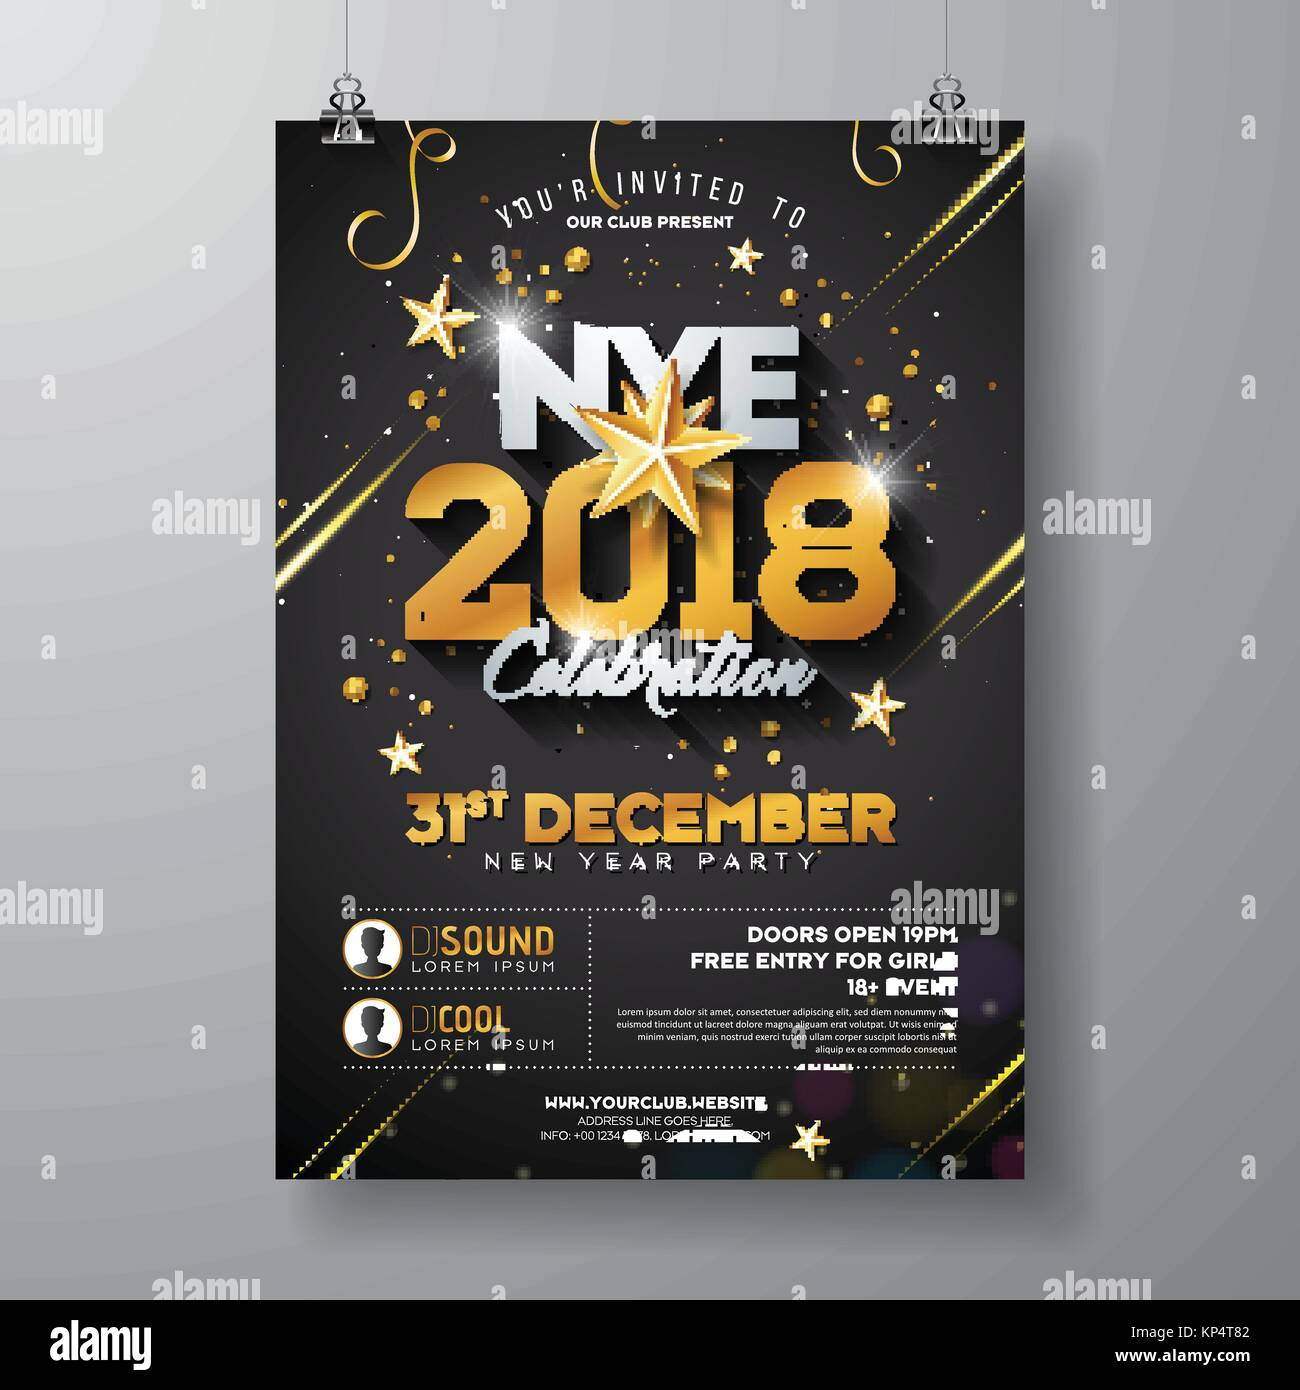 2018 new year party celebration poster template illustration with shiny gold number on black background vector holiday premium invitation flyer or promo